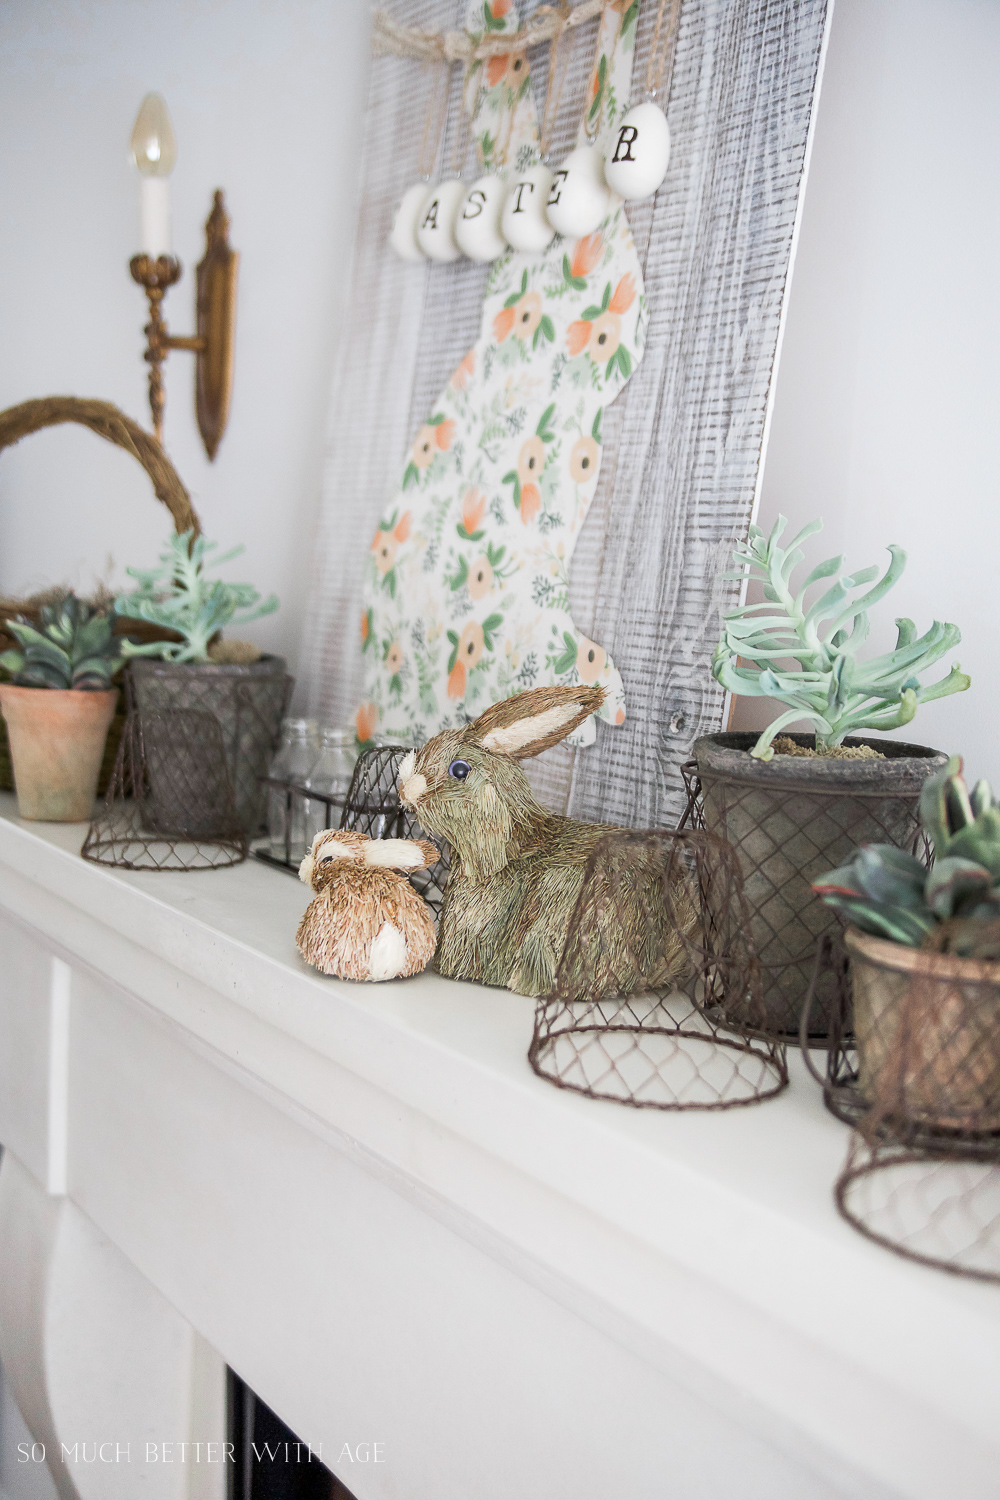 Spring Mantel/natural bunny decor and baskets - So Much Better With Age